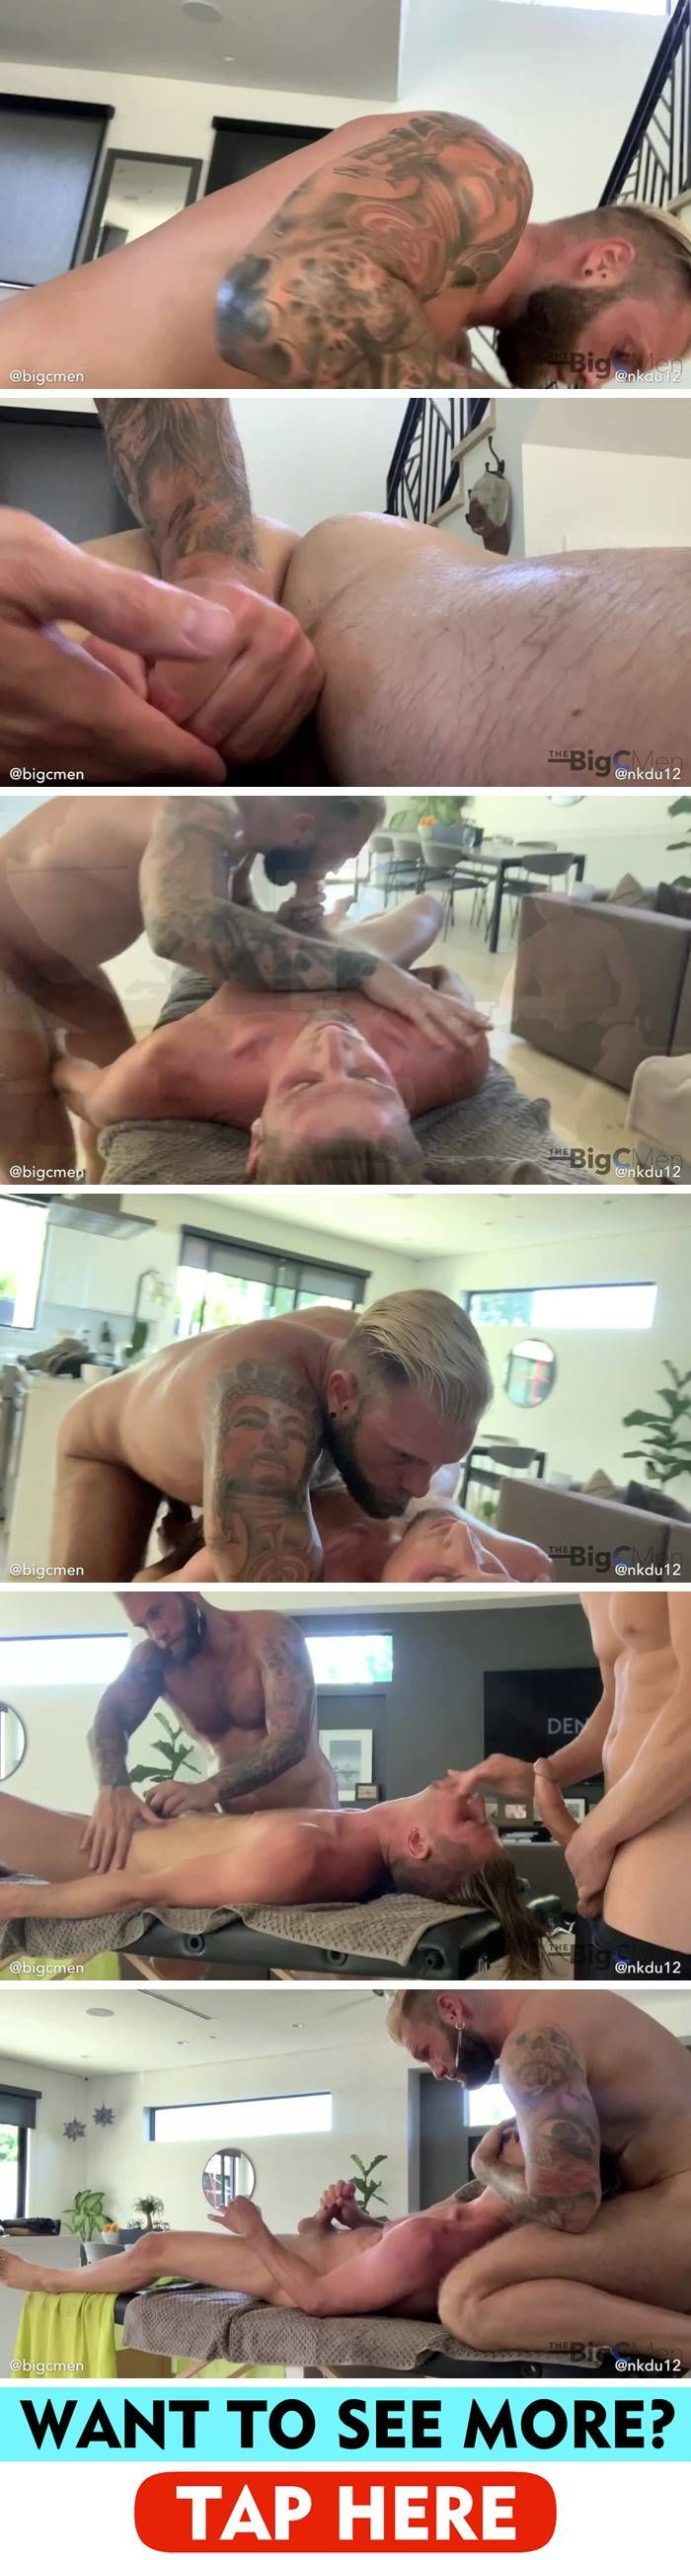 The Big C Men: Tantric sex with Cory & Jared - Part 1